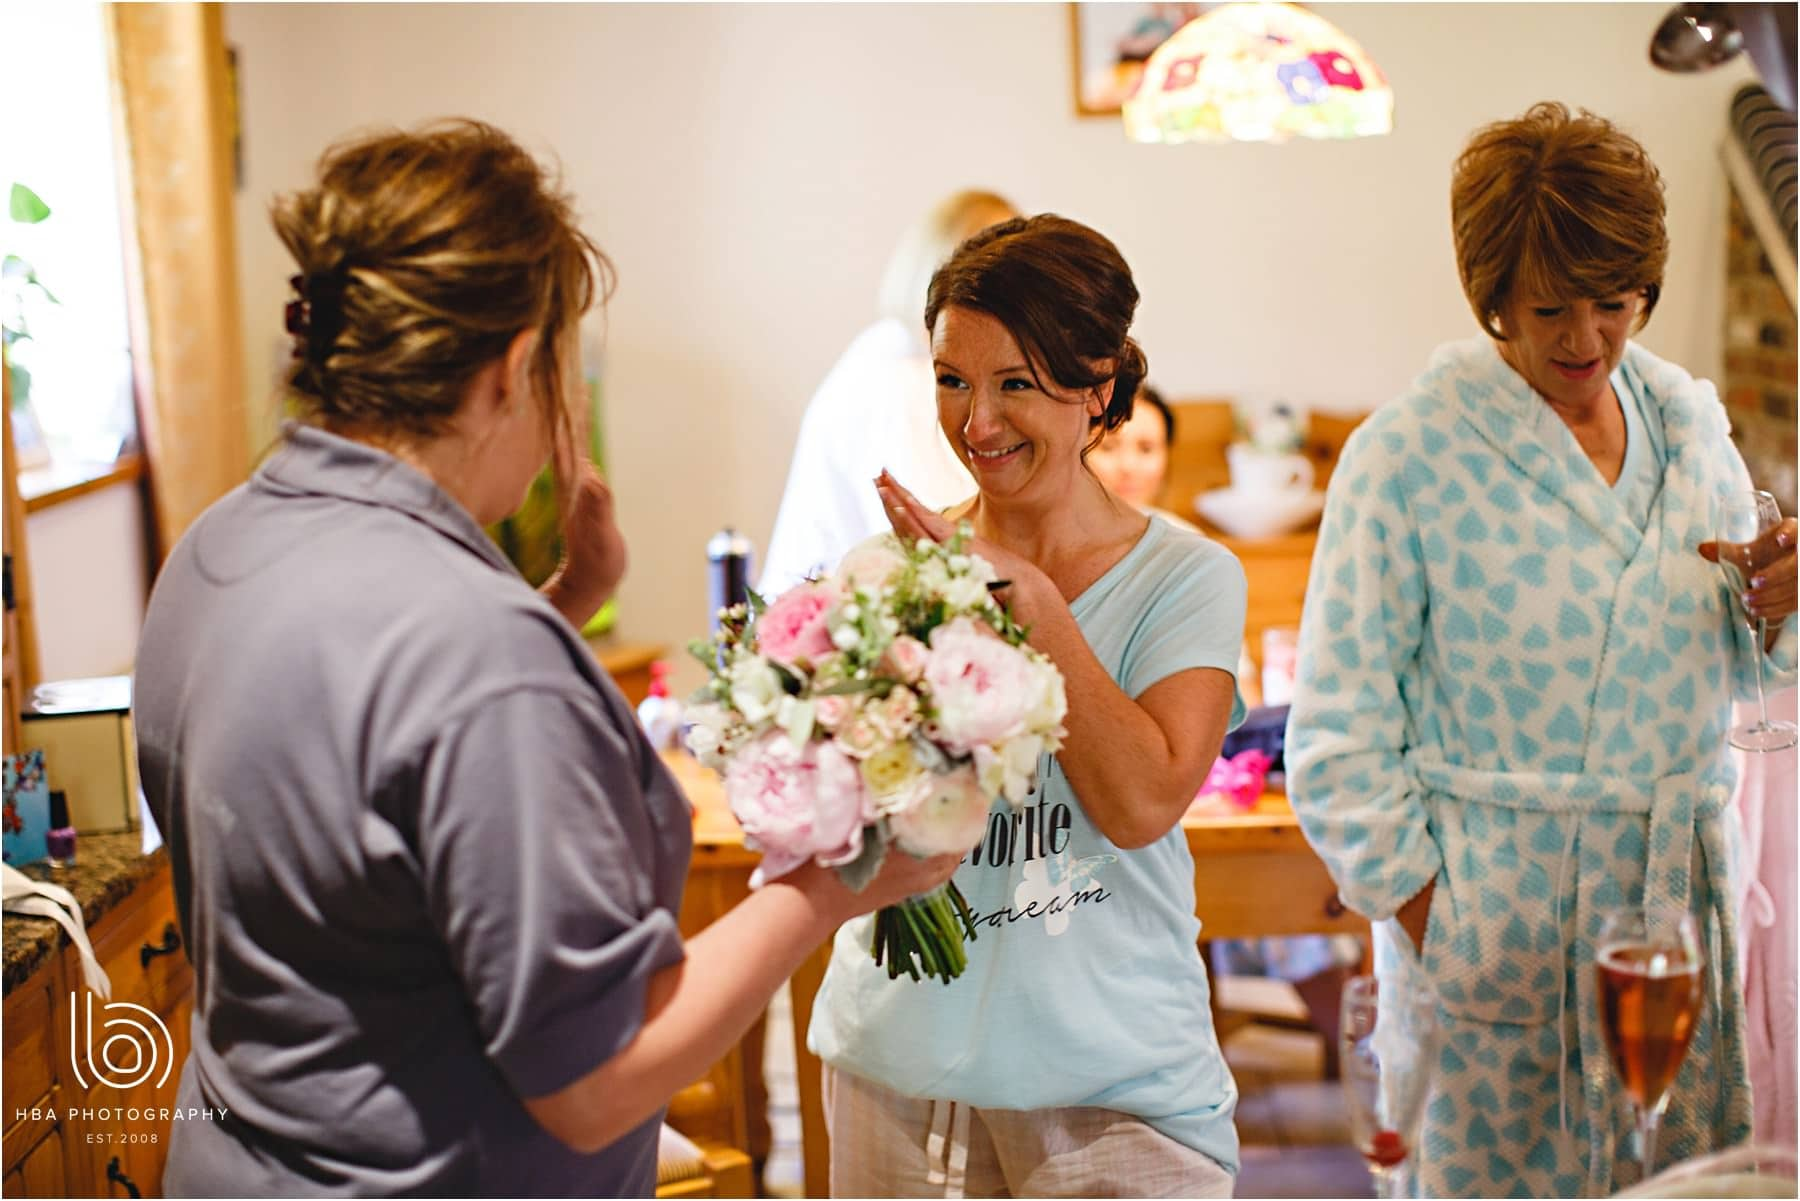 Shustoke_Farm_Barns_Wedding_Photos_Emma_Tom_0004